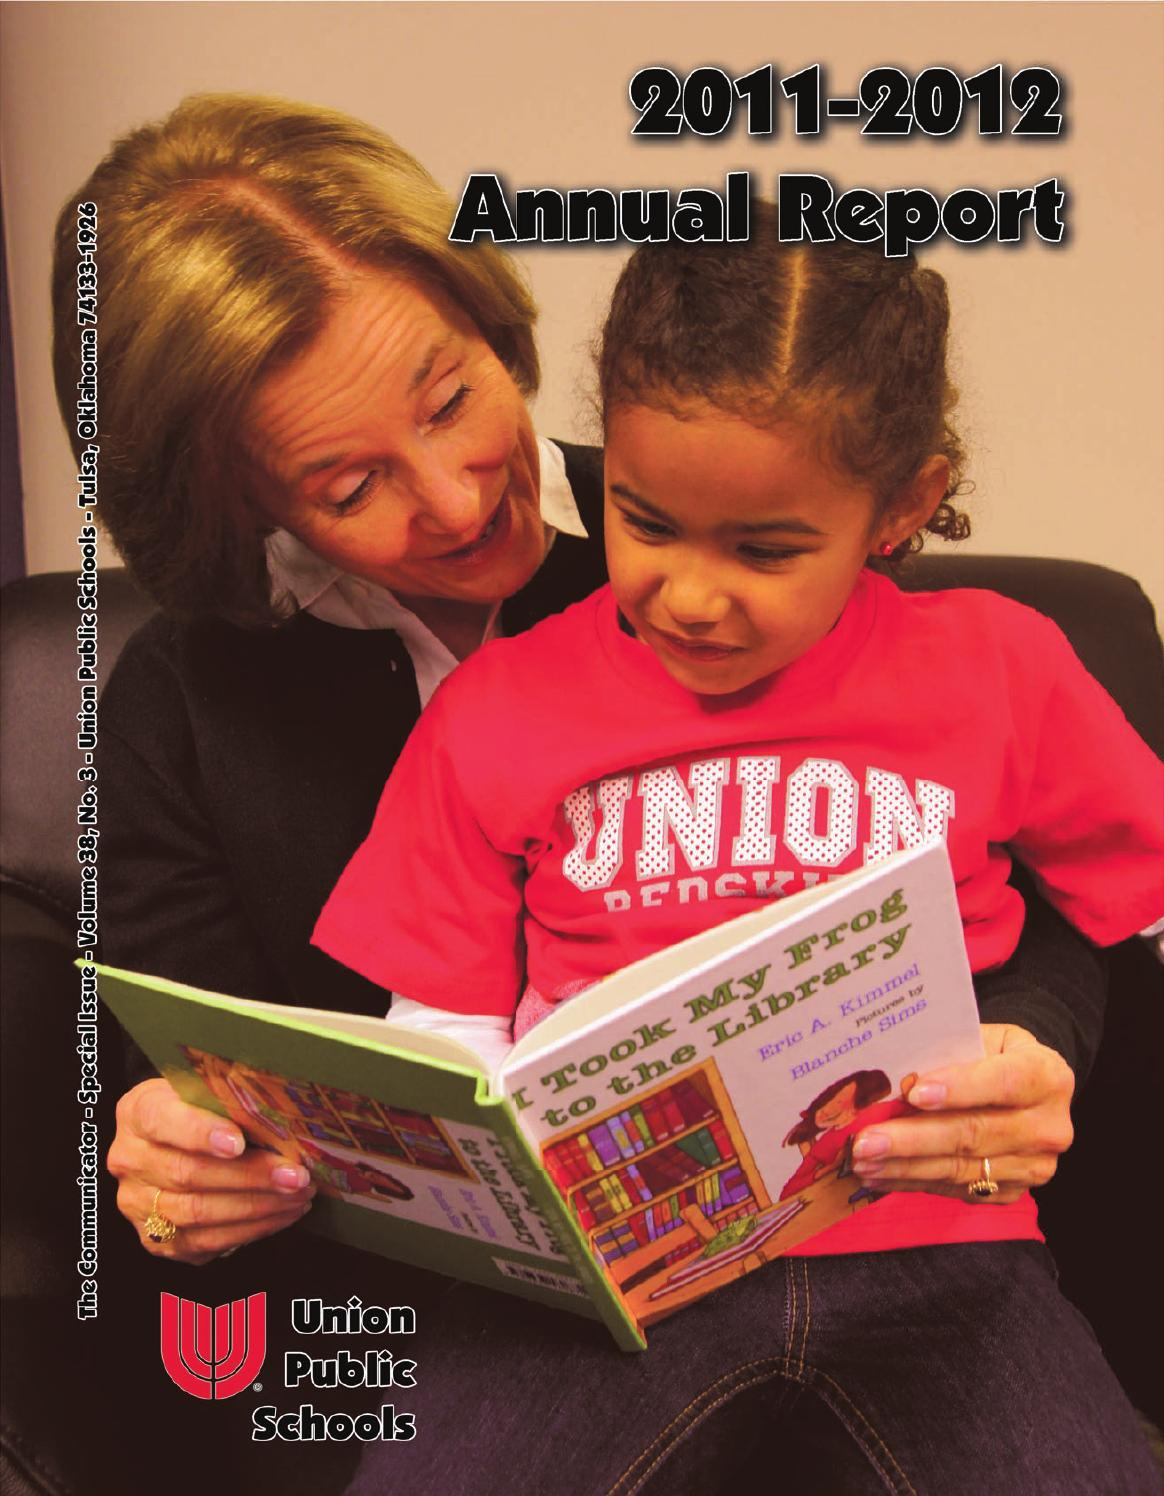 Union Public Schools Annual Report for 2011-2012 by Michael Vore - issuu